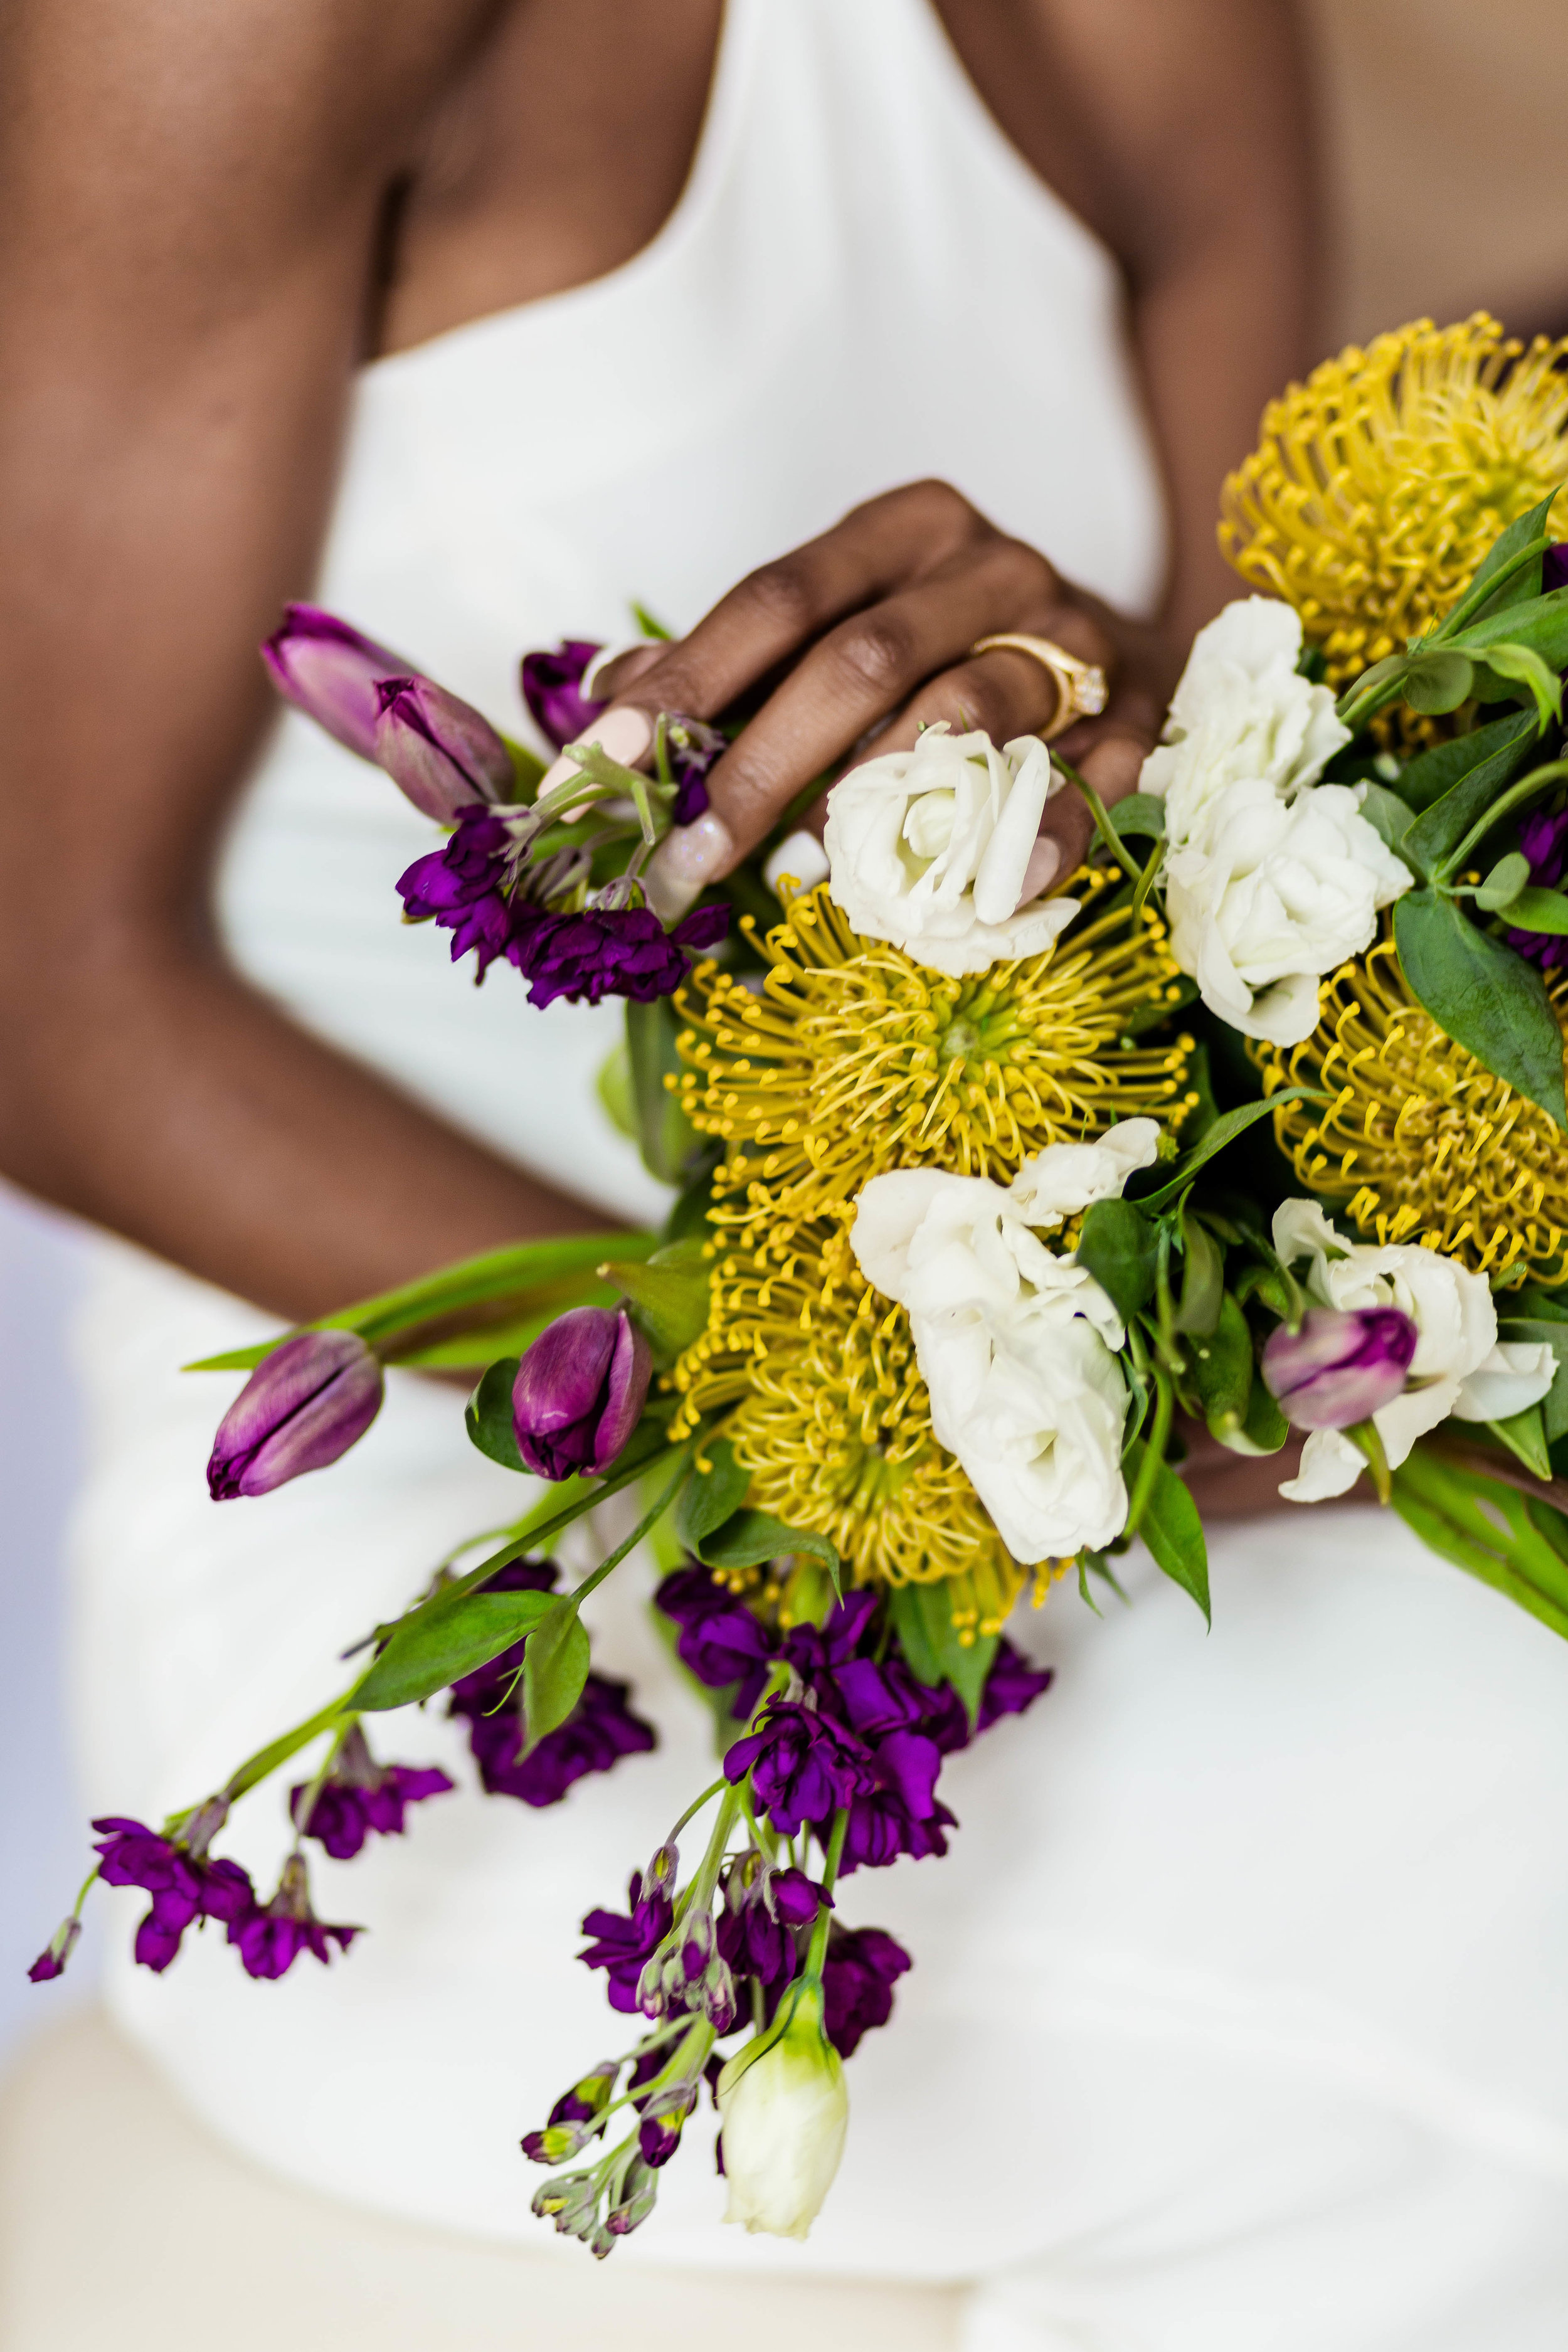 In11Views Photography Tenneal McNair Washington DC Maryland New Orleans Photographer Wedding Portraits Engagement Elopement (19).jpg